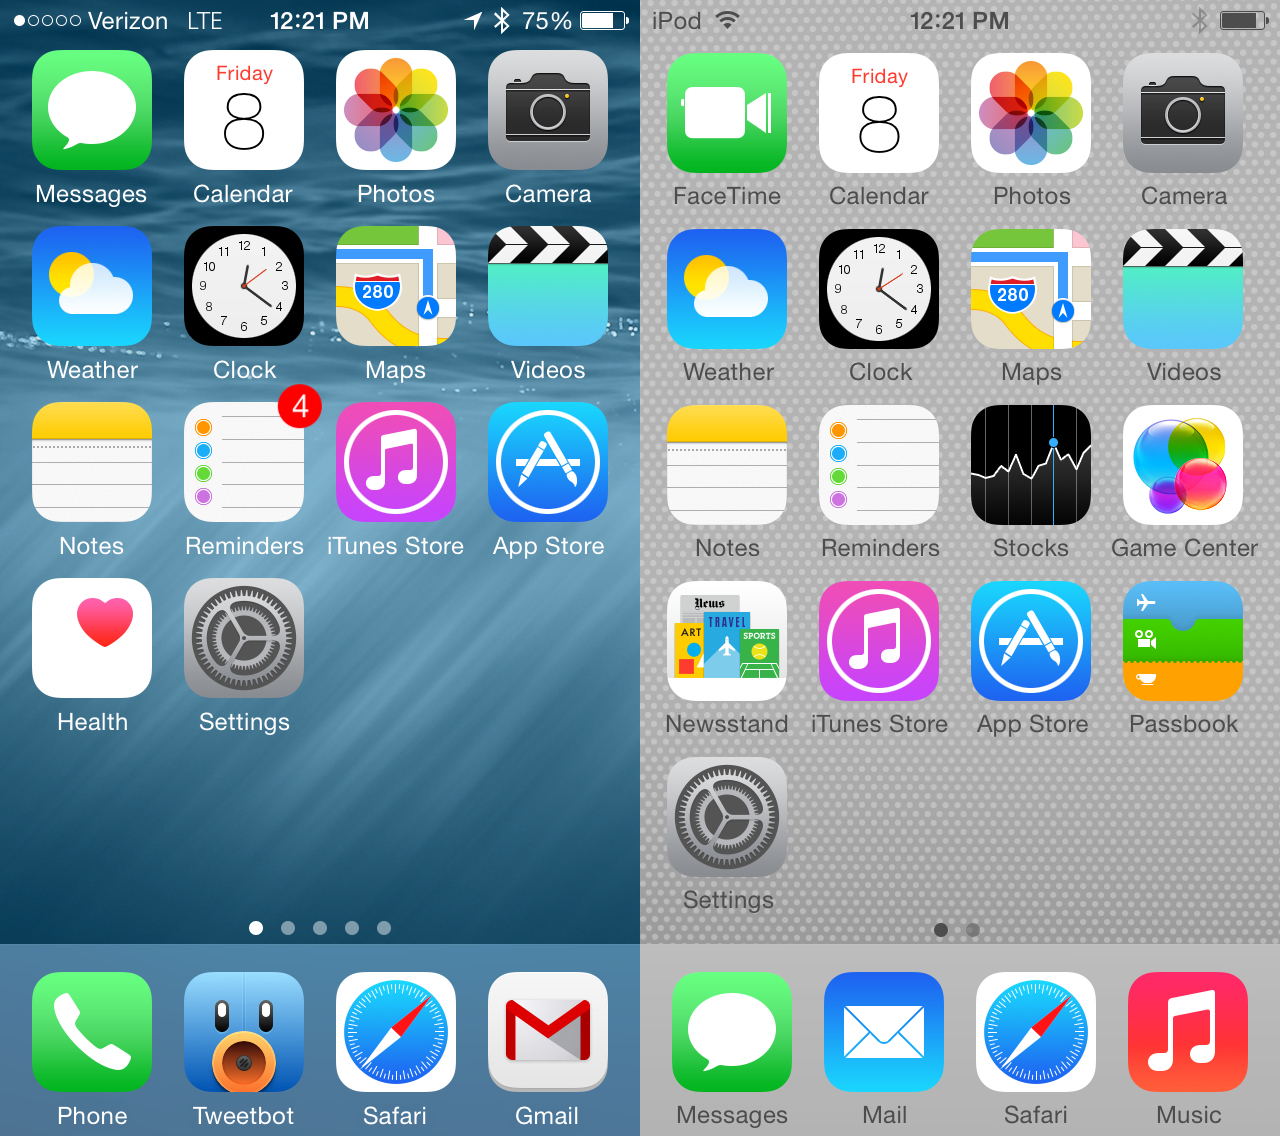 10 Home Screen Ios 8 Icons Images Iphone Ios 8 Home Screen Iphone Ios 8 Home Screen And Ipad